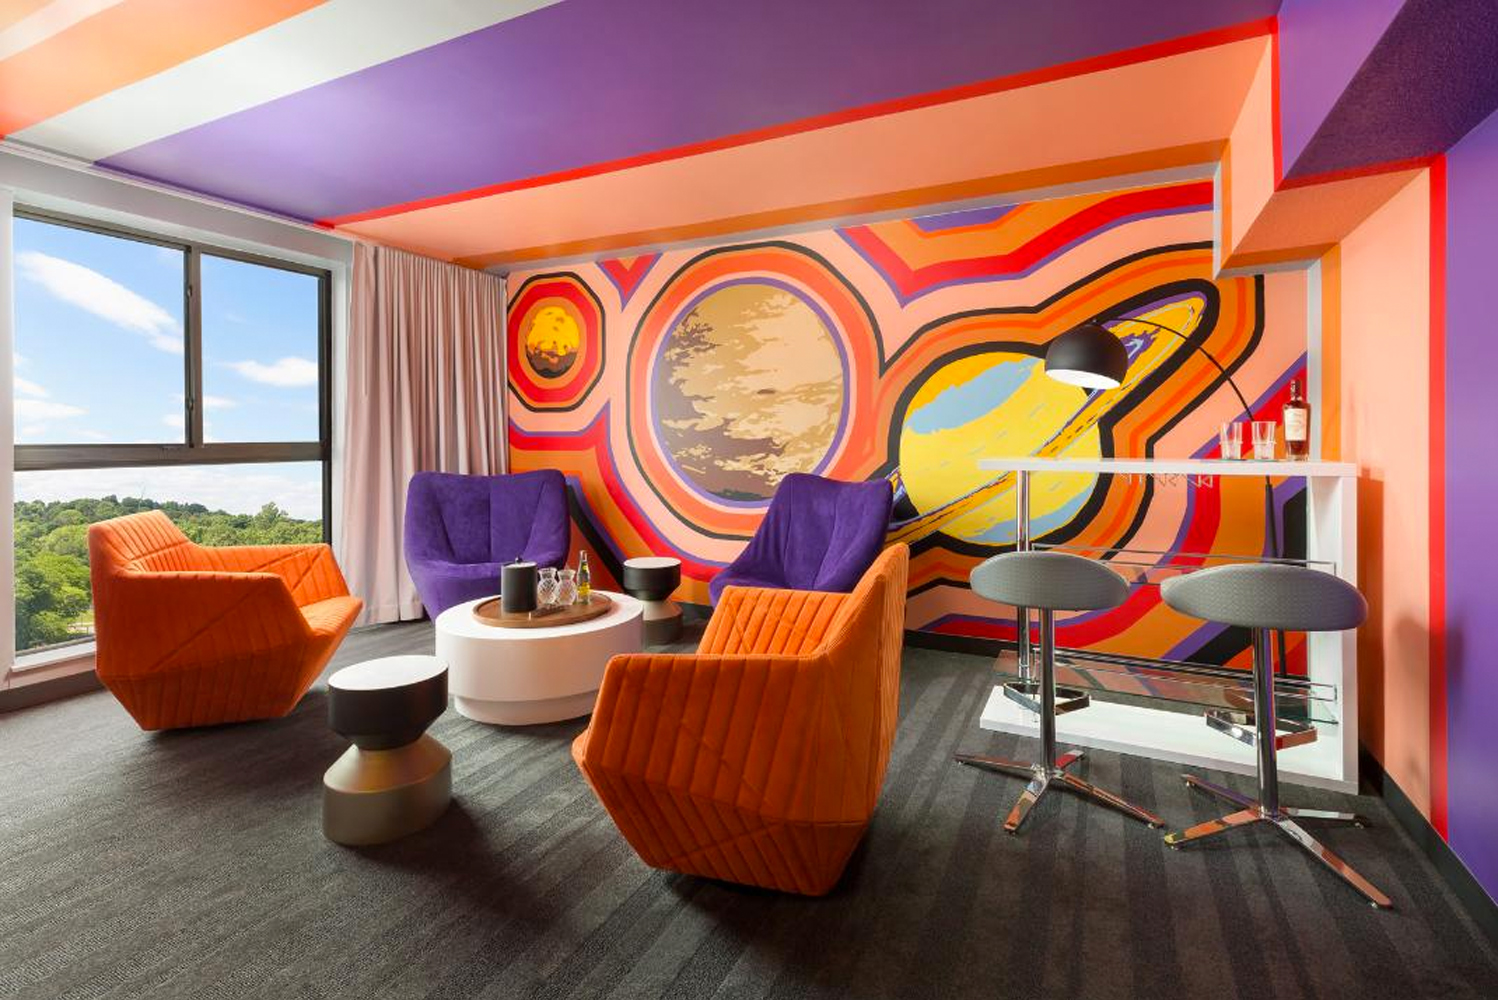 Drink in the Cosmos Suite has elements inspired by the galaxy in 60s mod style.